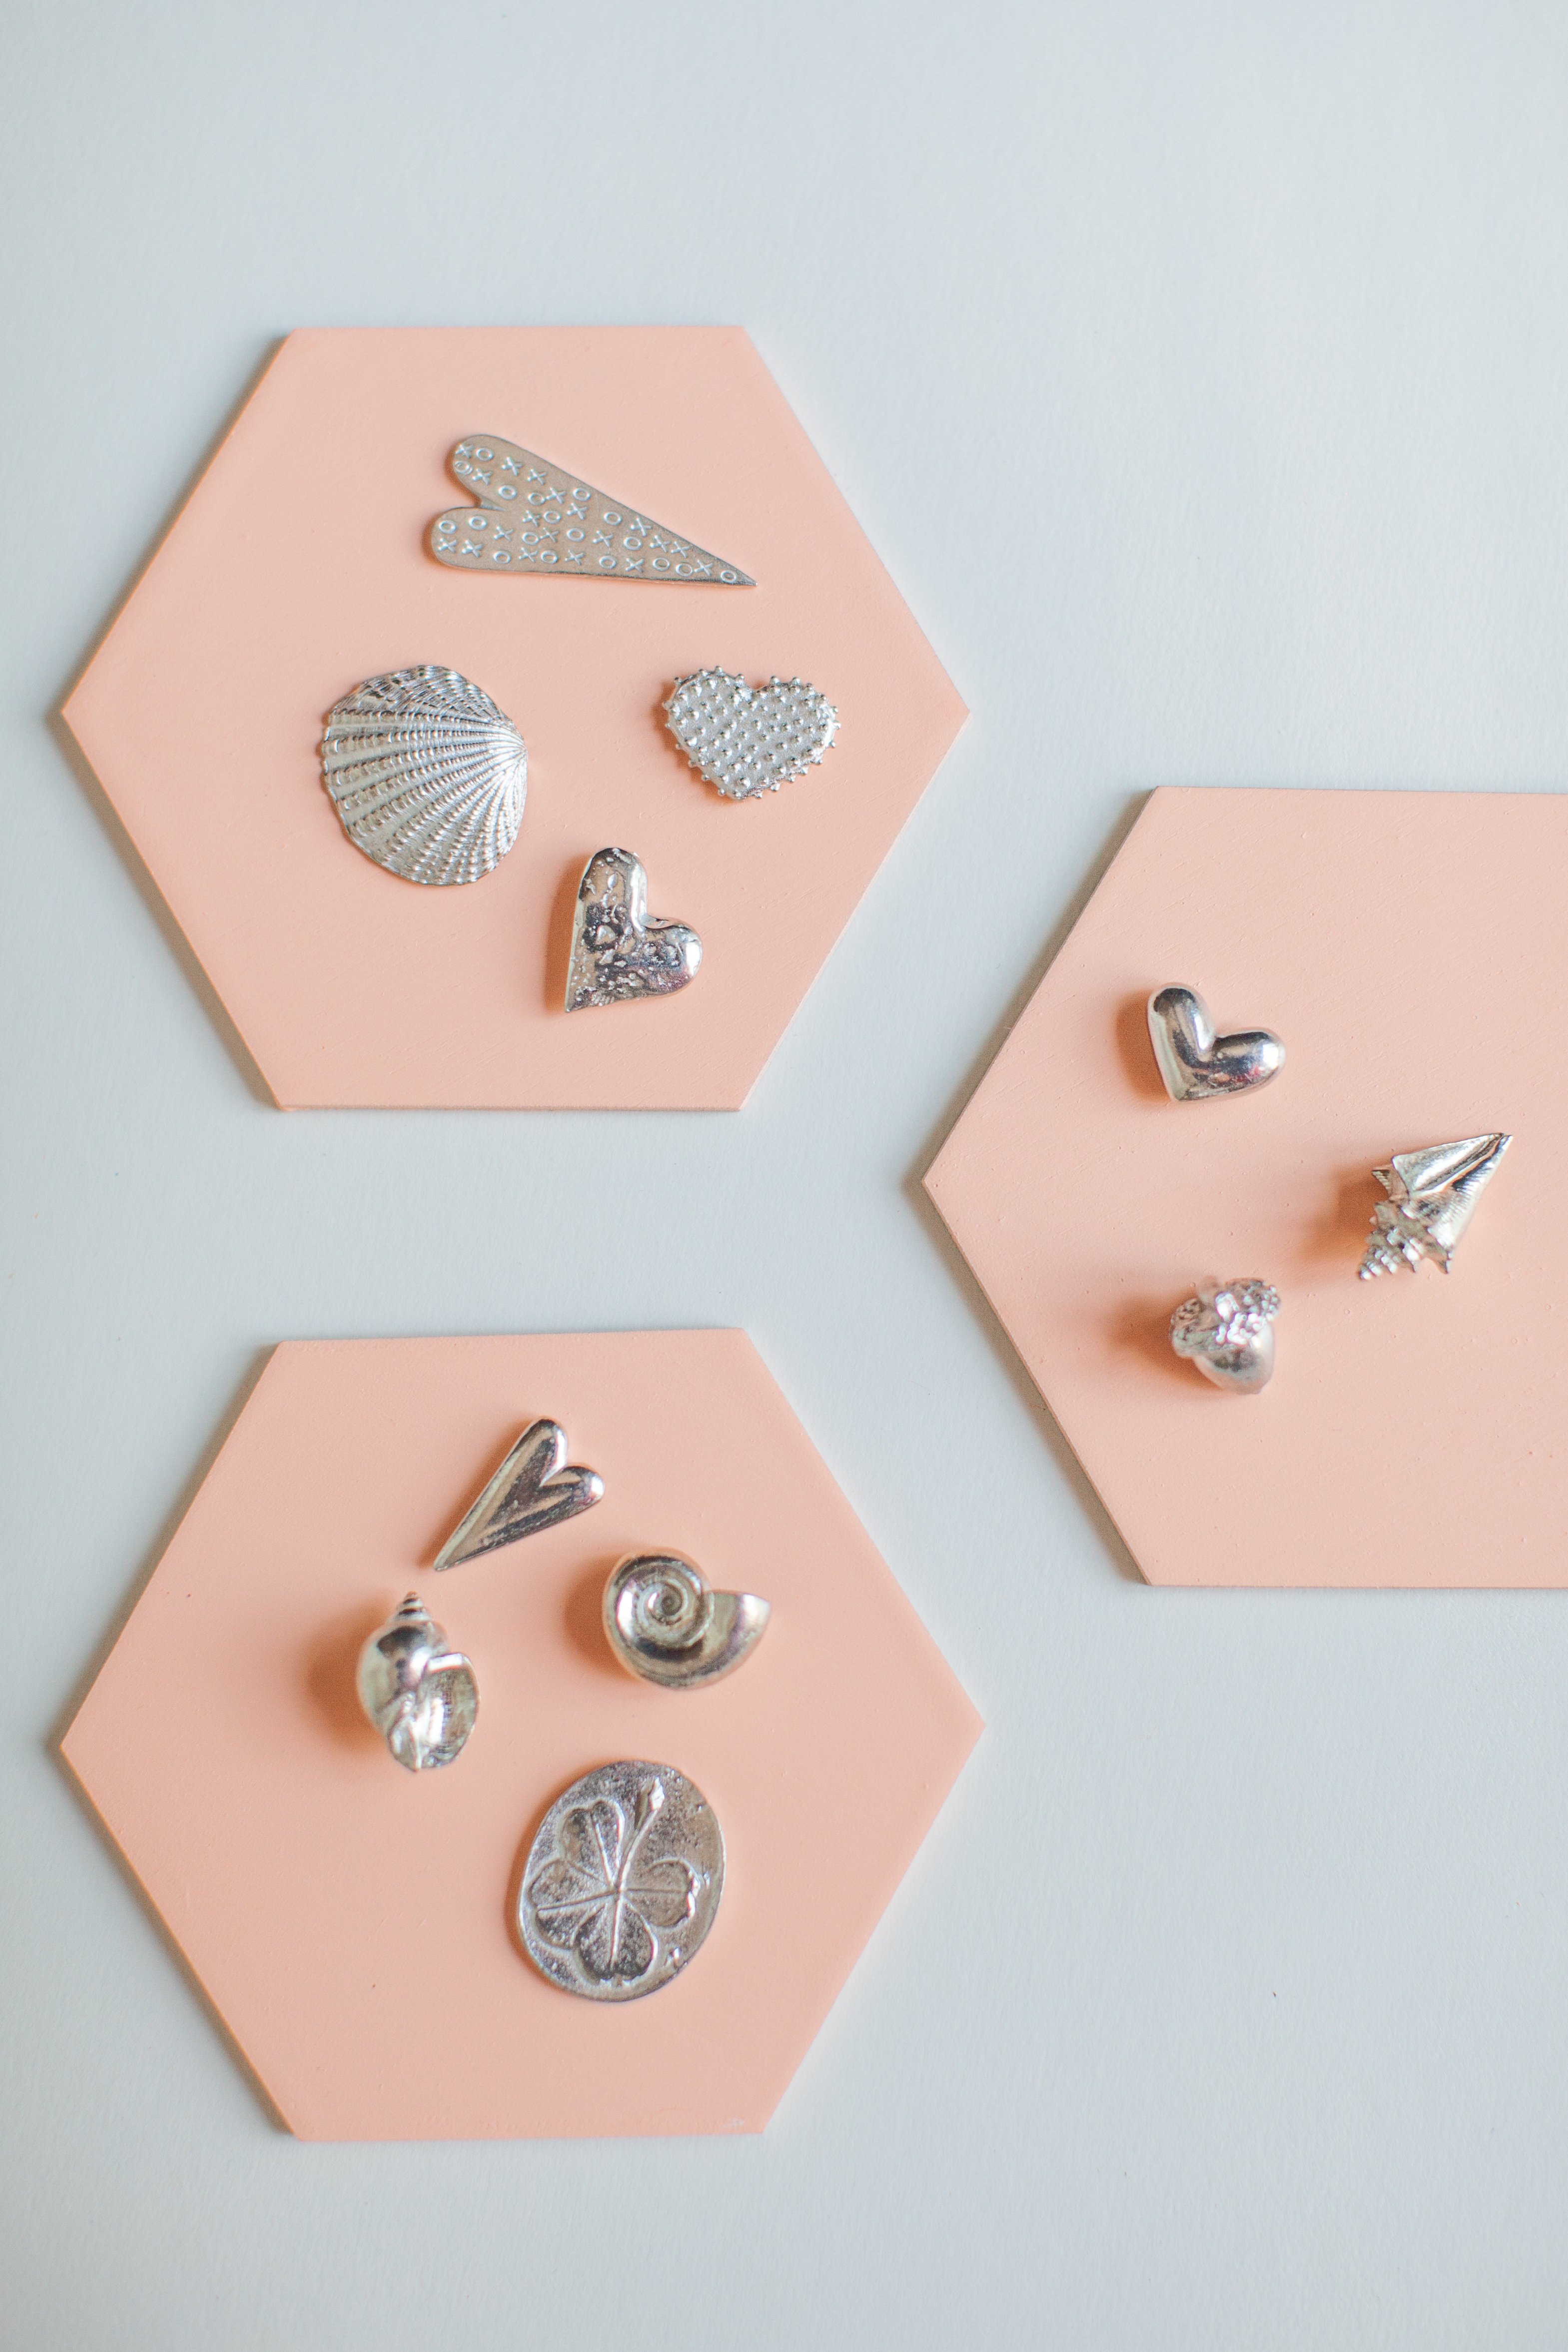 Pewter shell, acorn, heart pewter charms